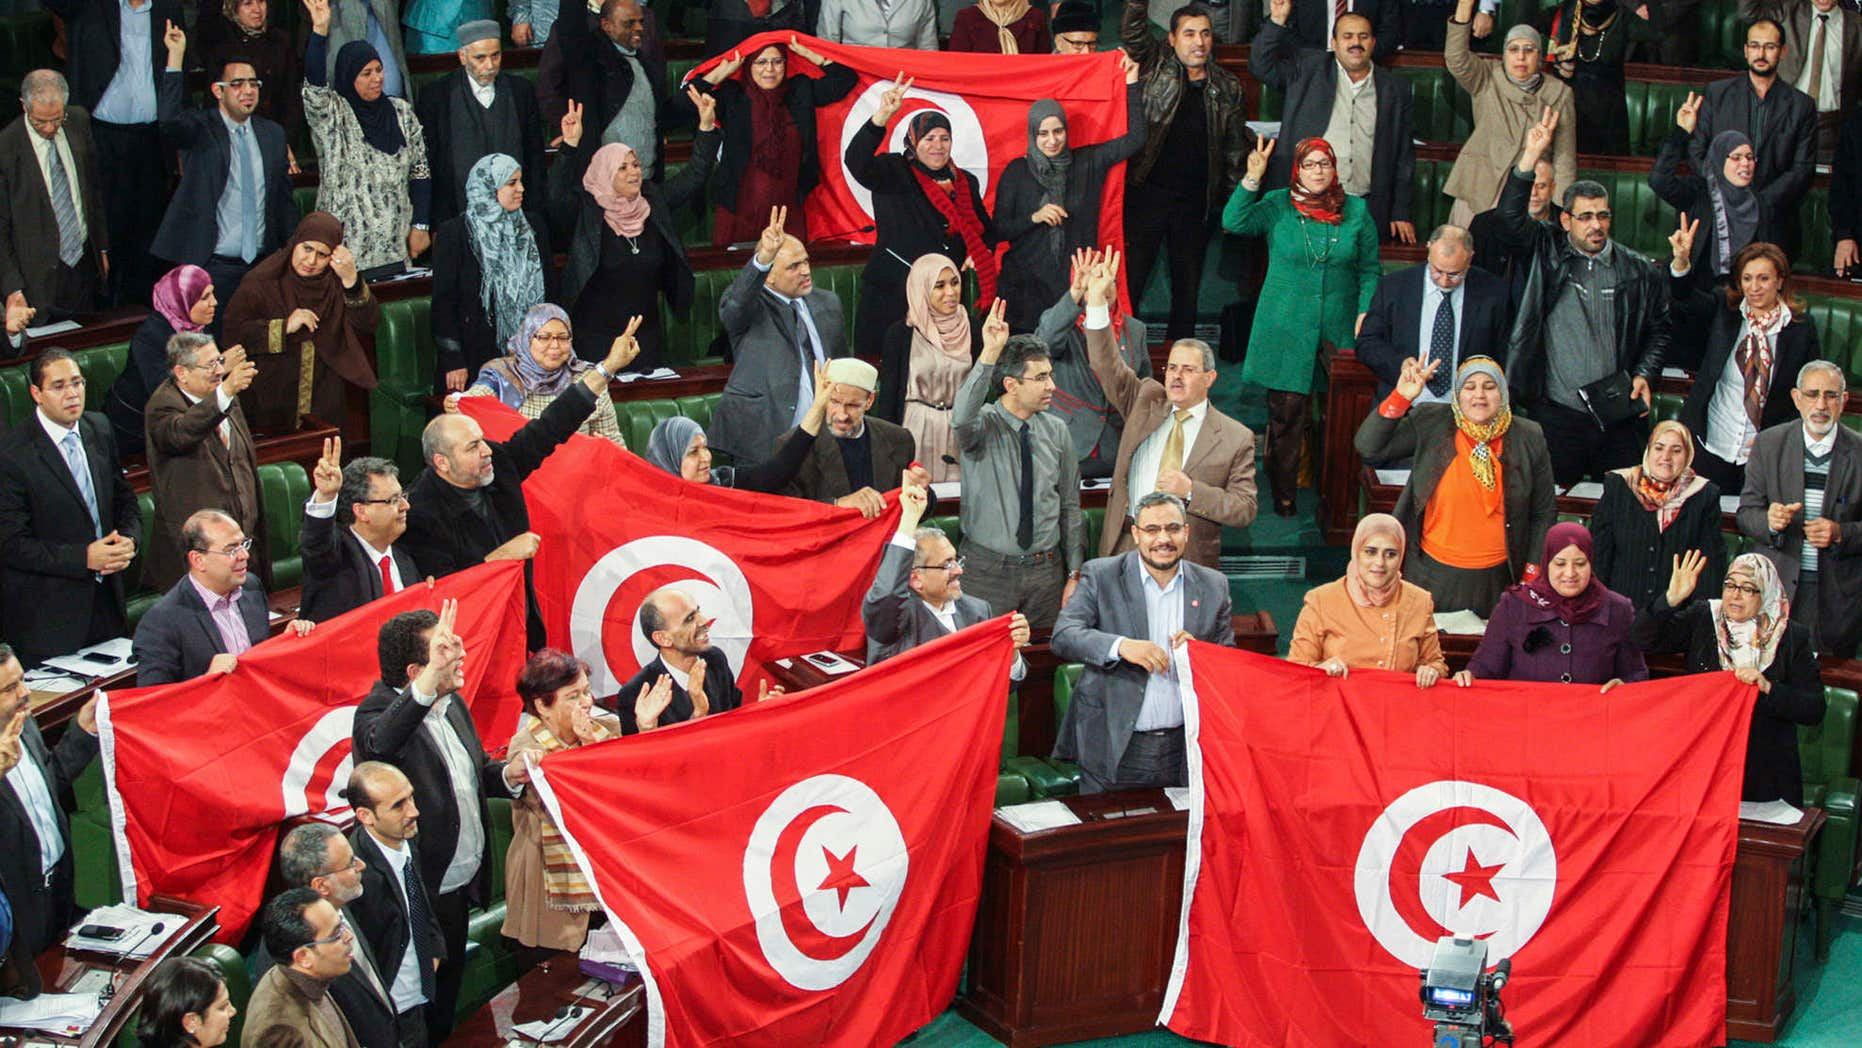 FILE - In this Sunday, Jan. 26, 2014 file photo, members of the Tunisian National Constituent Assembly celebrate the adoption of the new constitution in Tunis, Tunisia.